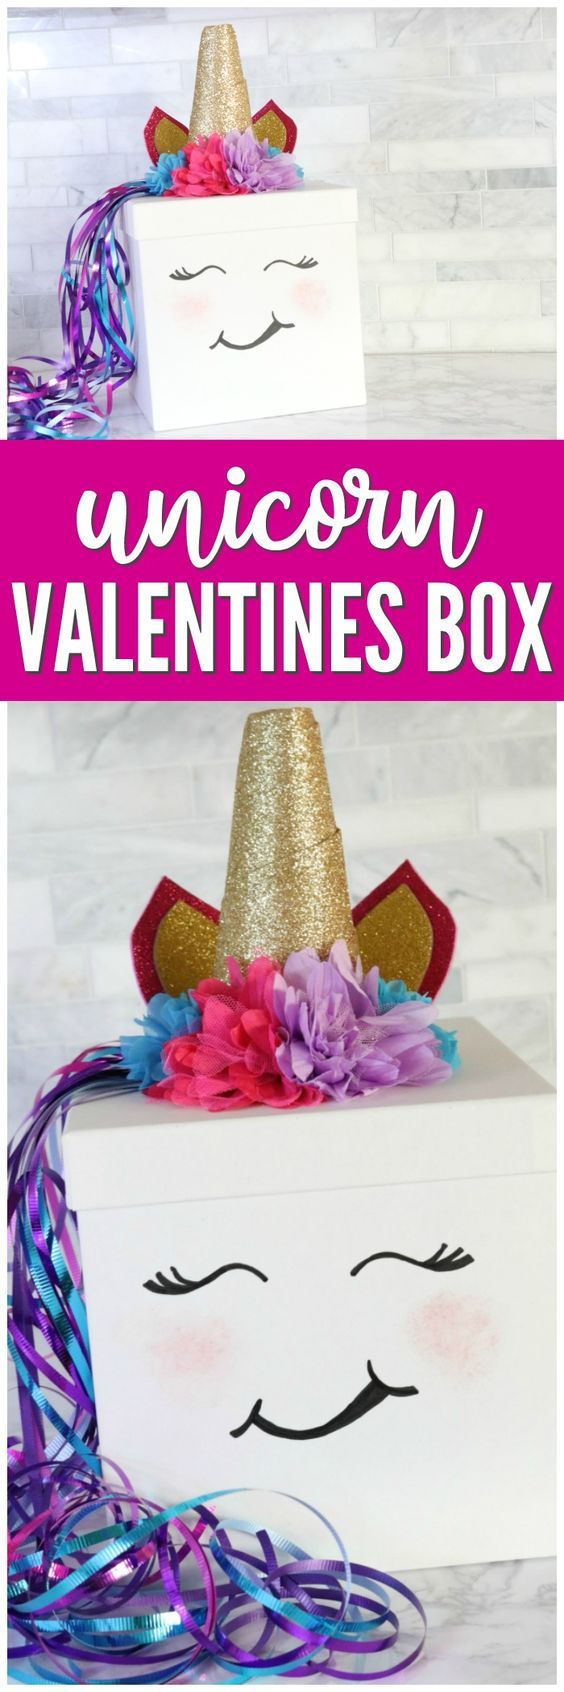 Easy Unicorn Valentines Day Box Idea You can Make Yourself! This is the Perfect Girl Valentines Day Box Idea for school your Unicorn Lover!